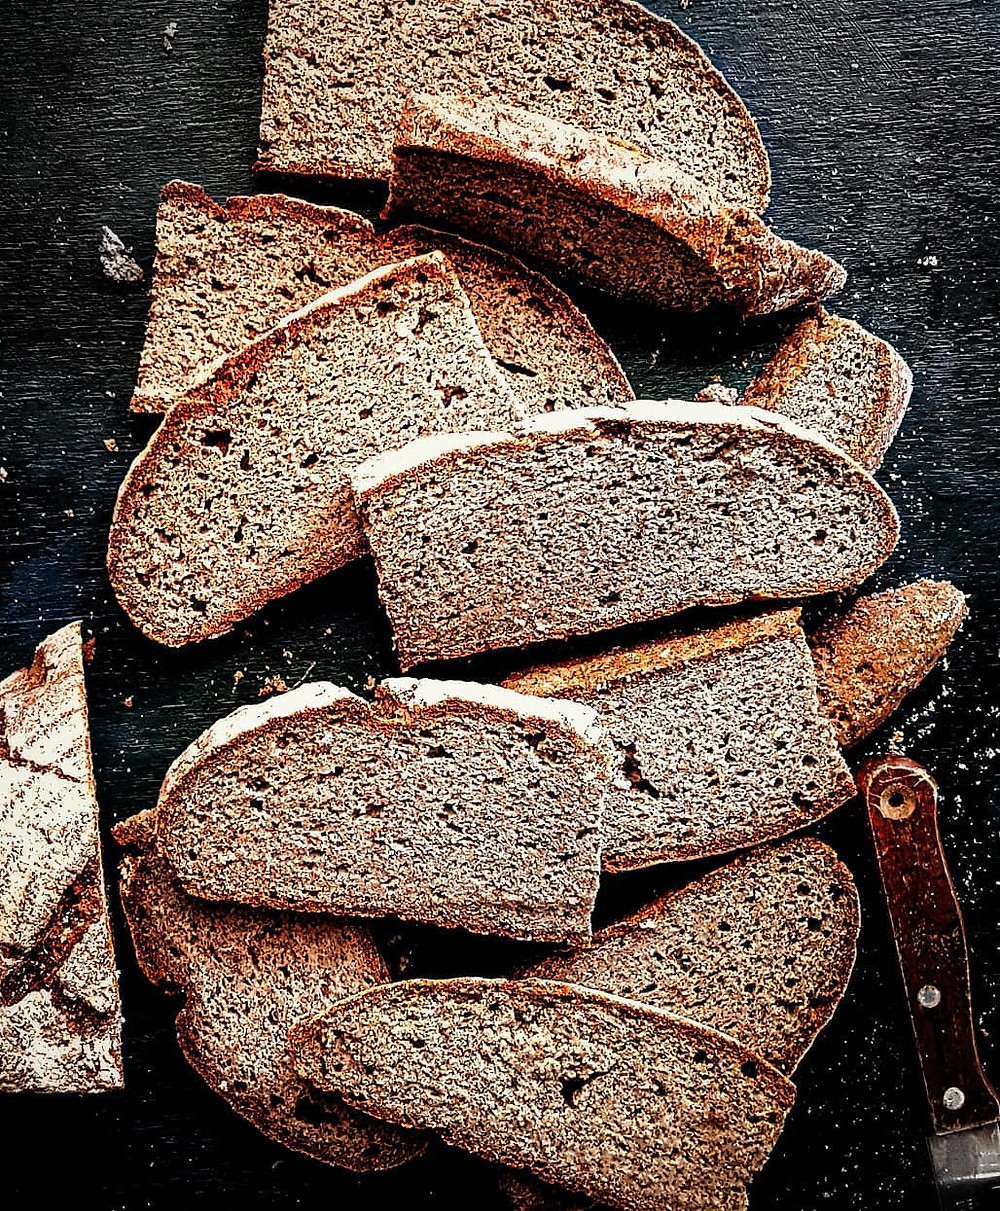 An option for a Gluten Free Vegan Bread Recipe